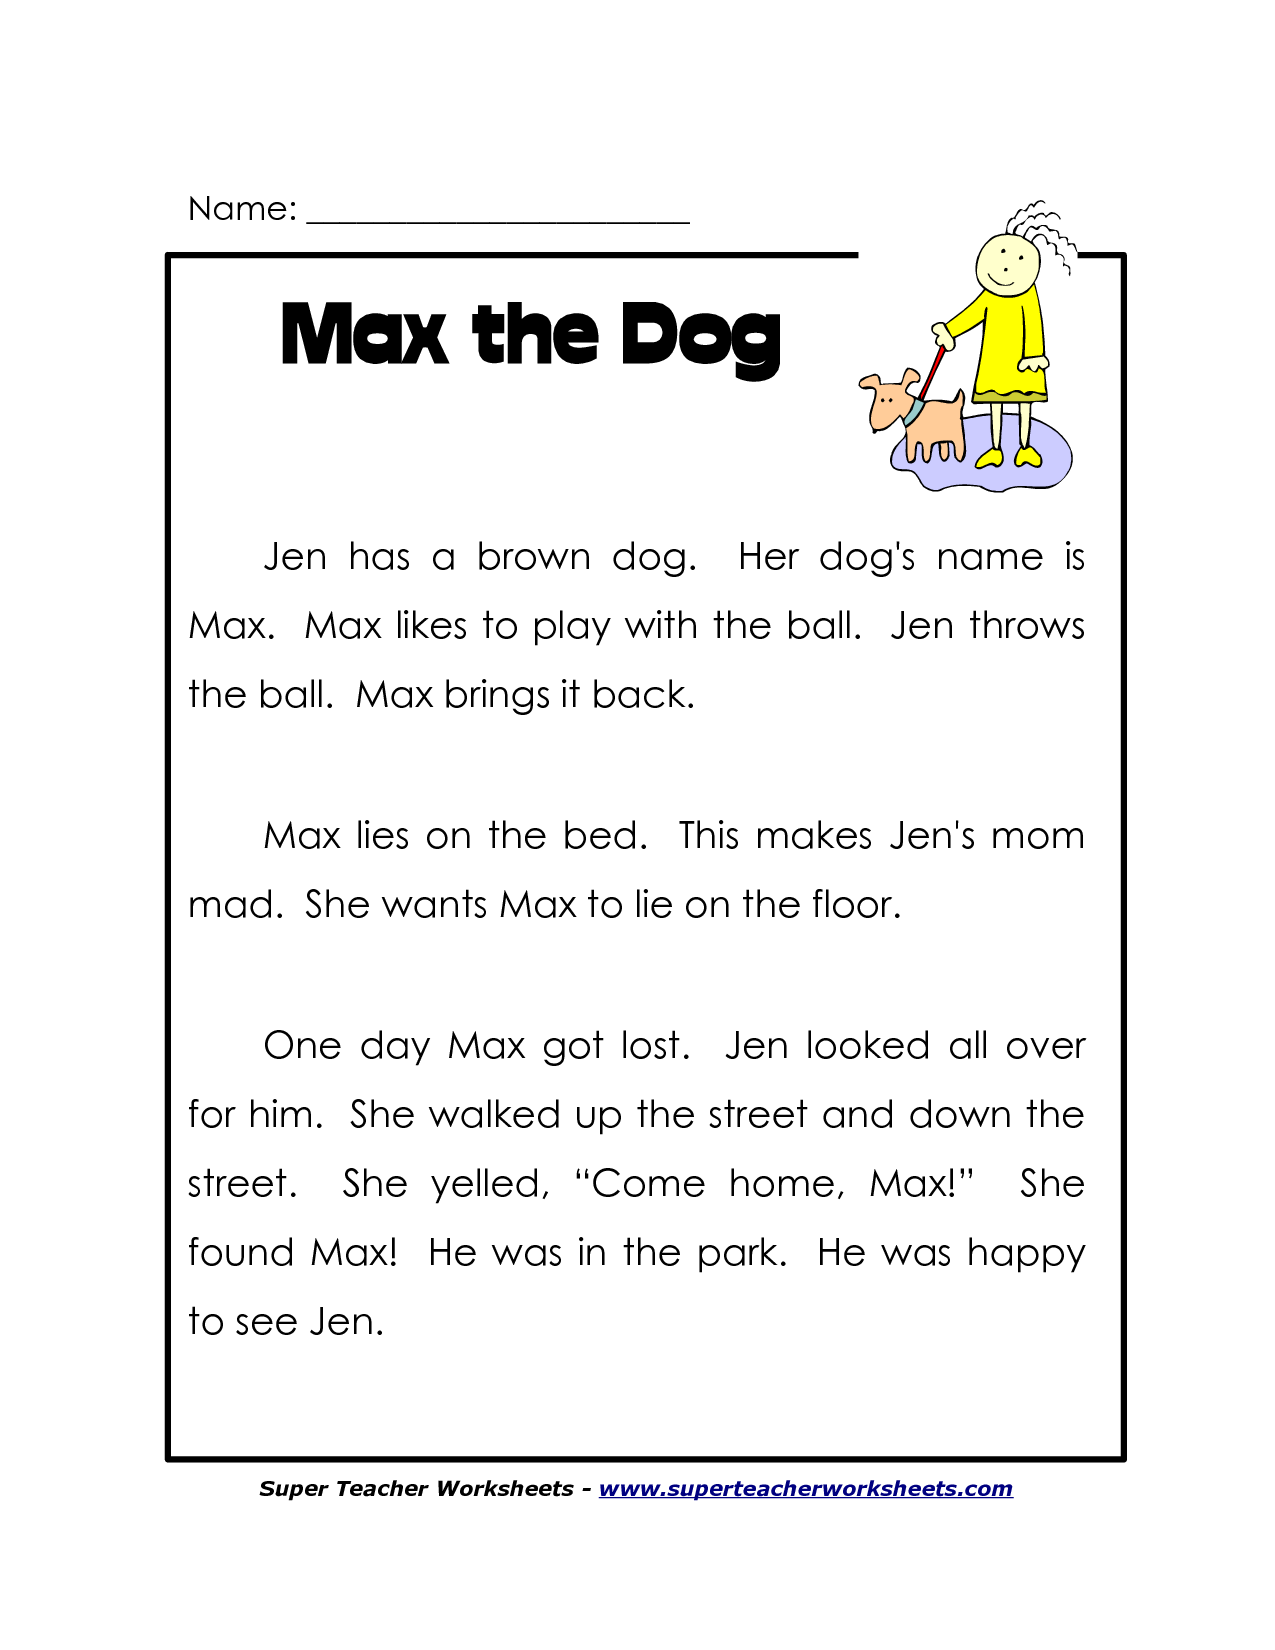 Worksheets Free Reading Worksheets For 1st Grade 1st grade reading printable worksheets pichaglobal comprehension and children on pinterest grade